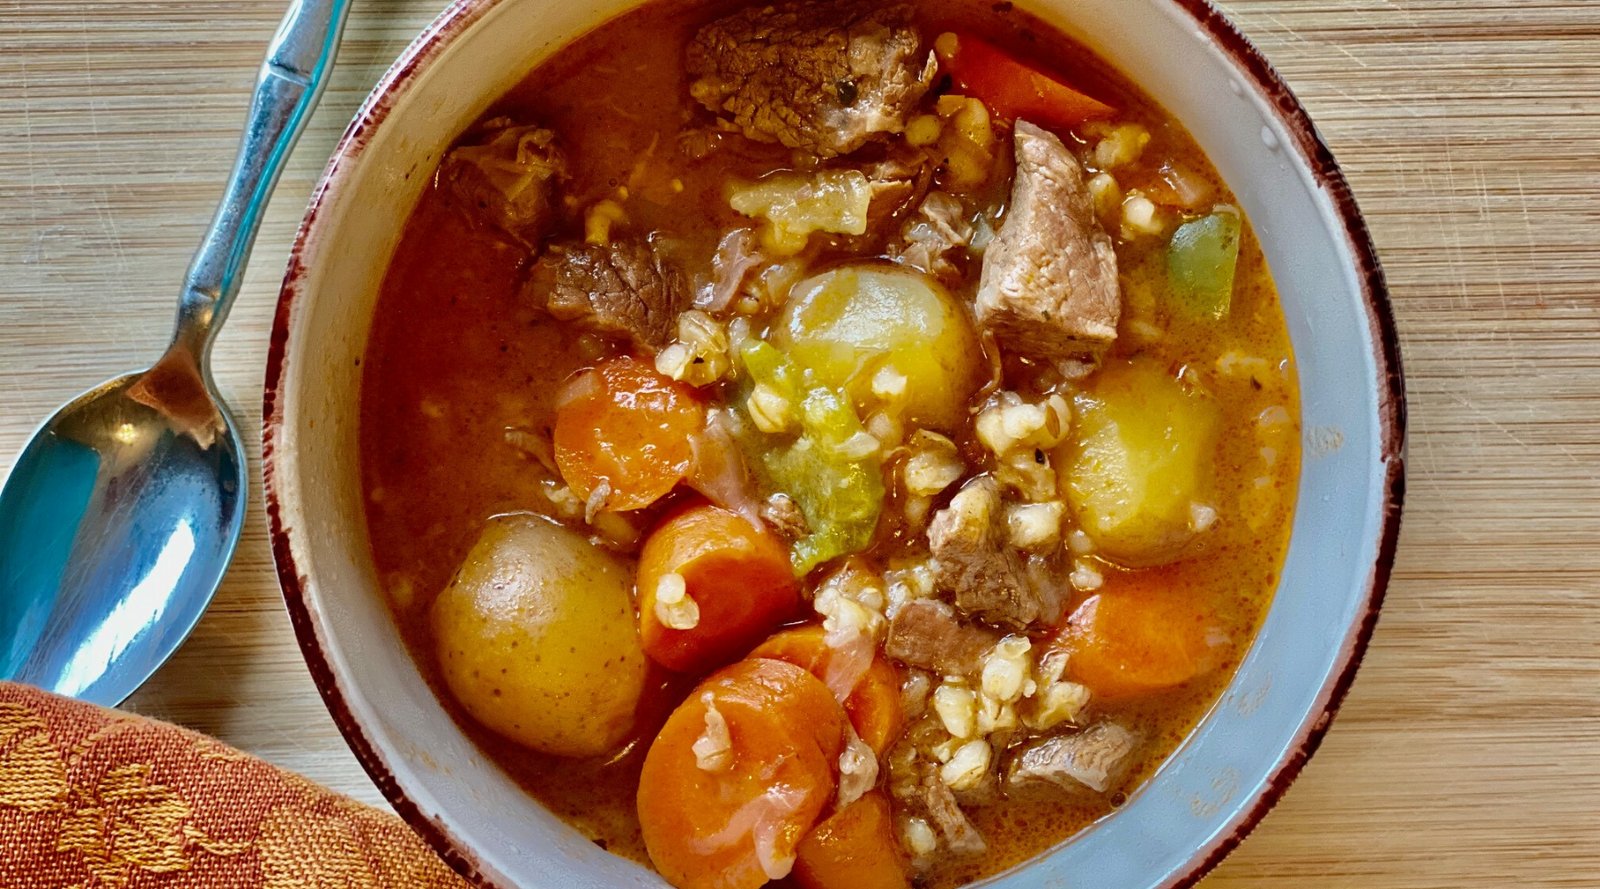 Slow Cooker Grass-fed Beef Barley Potato Soup Recipe in Just 2 Hours